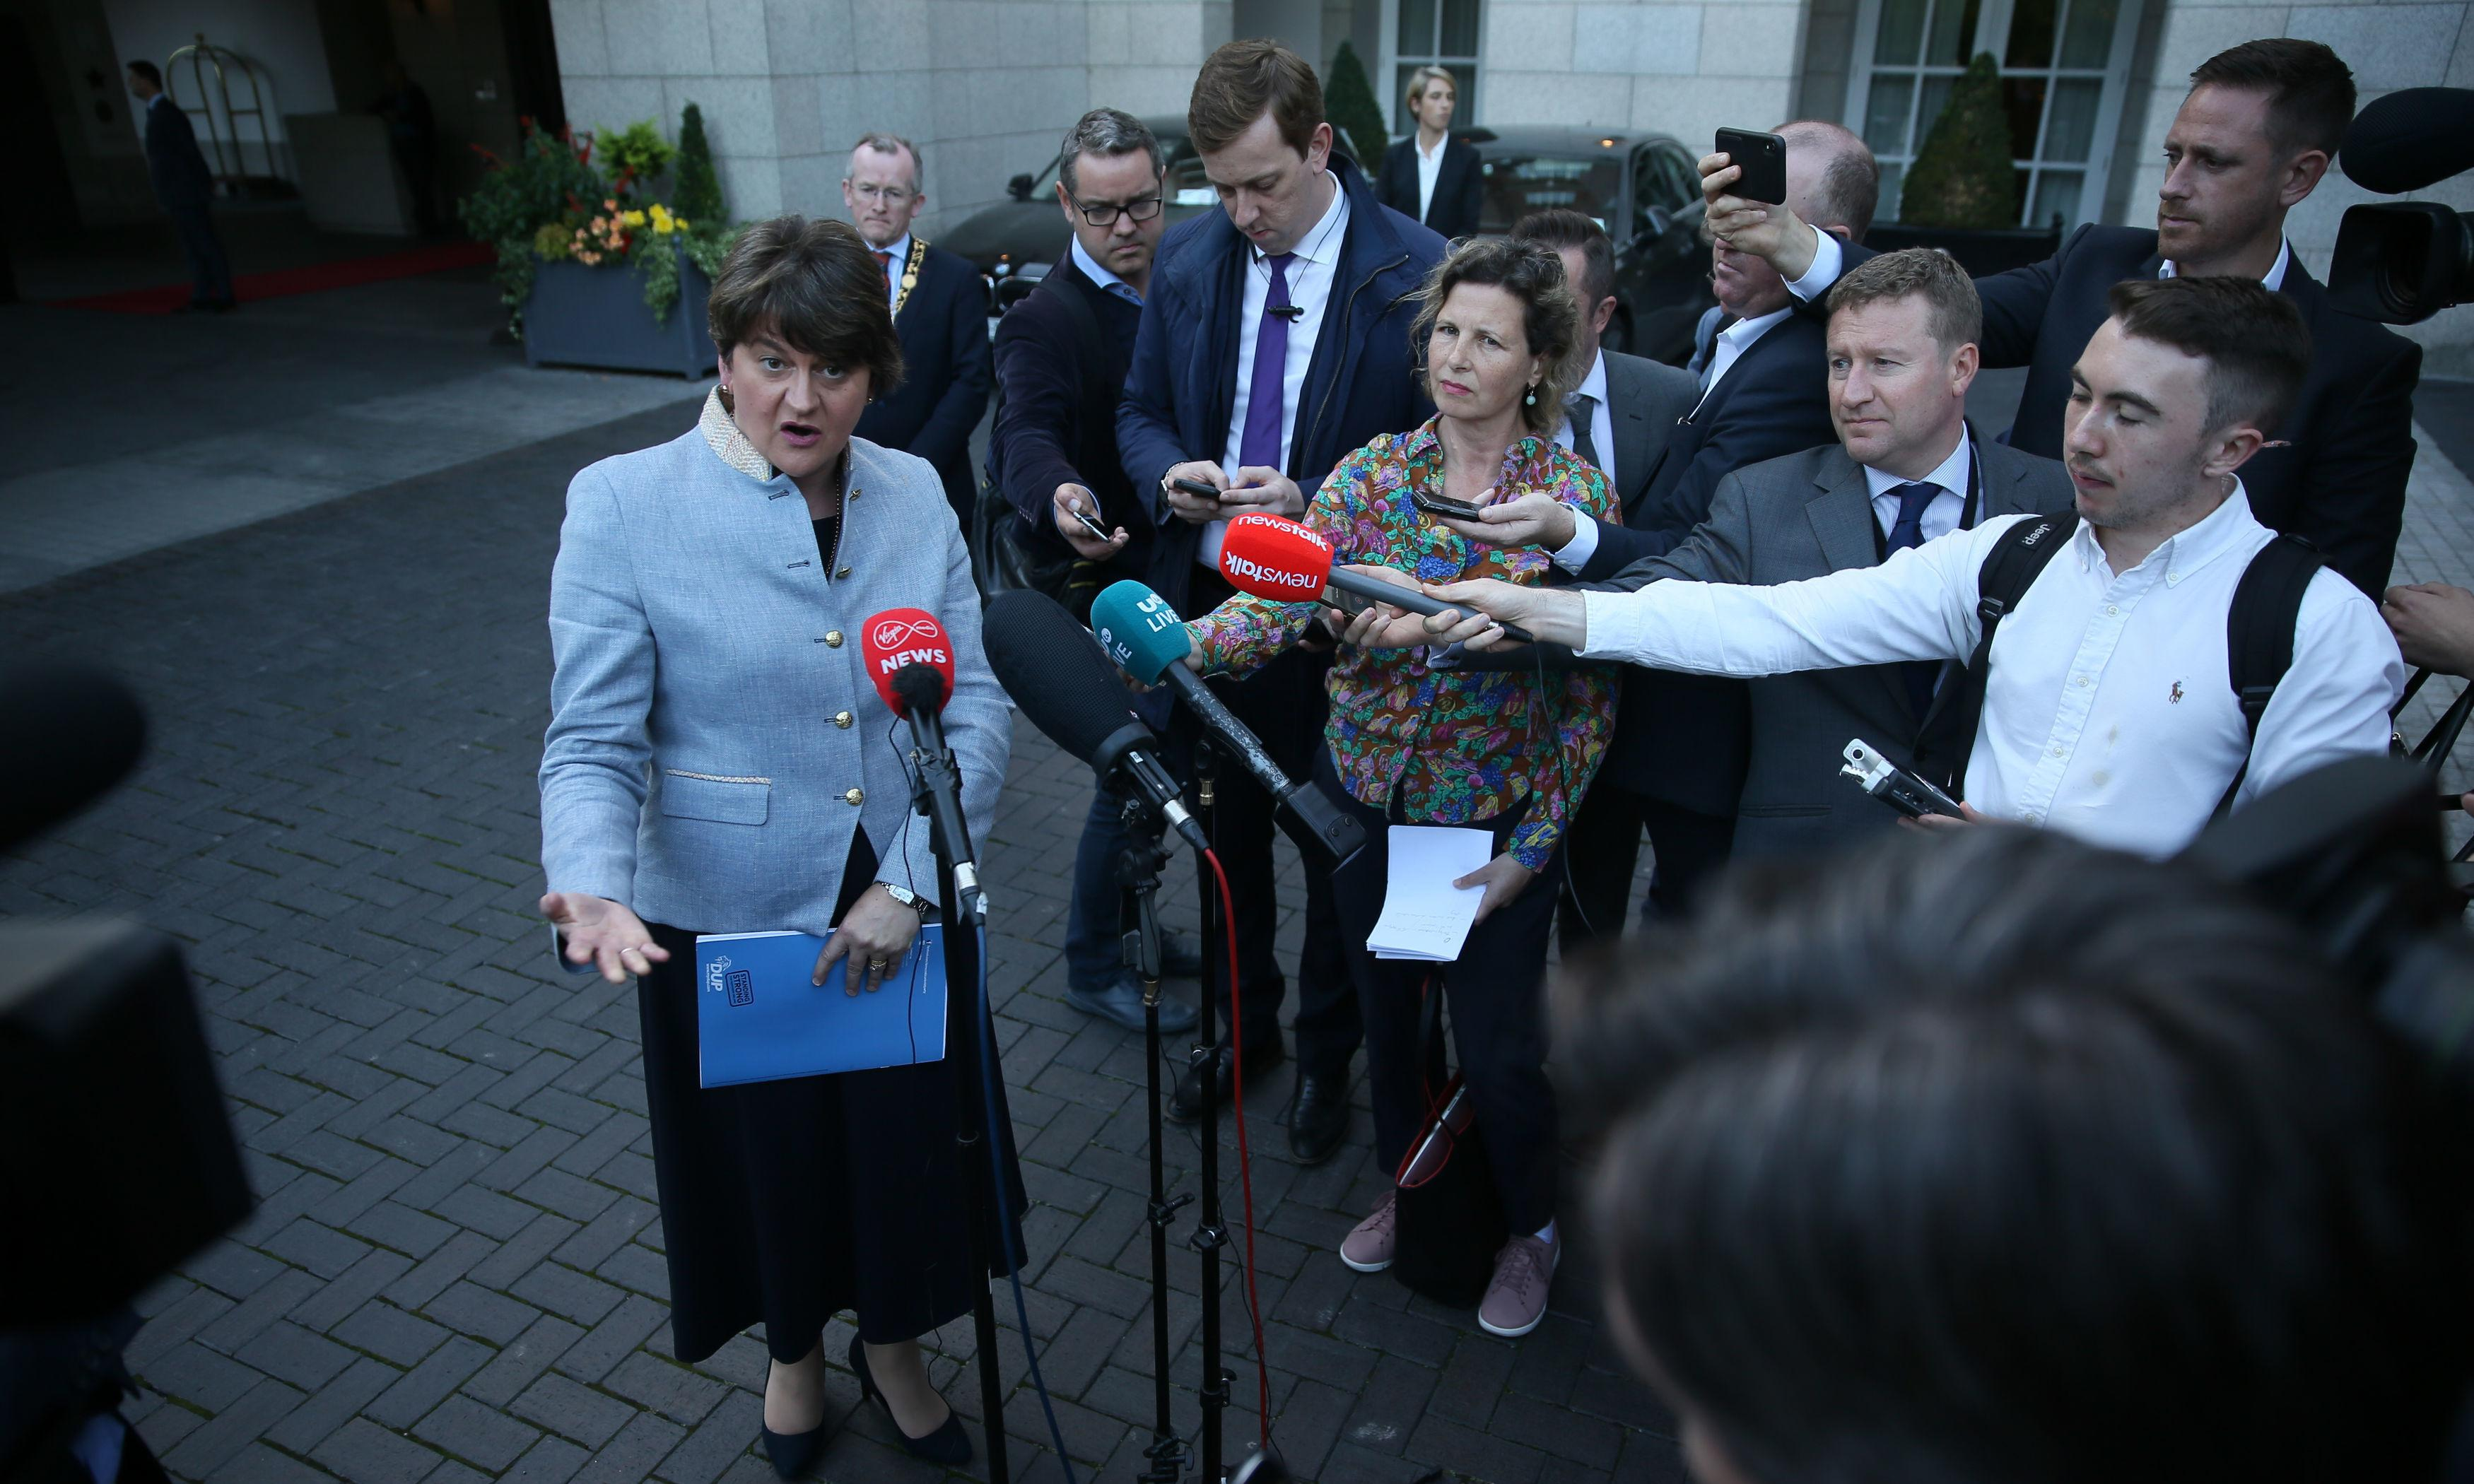 Arlene Foster signals DUP shift on Northern Ireland border issue